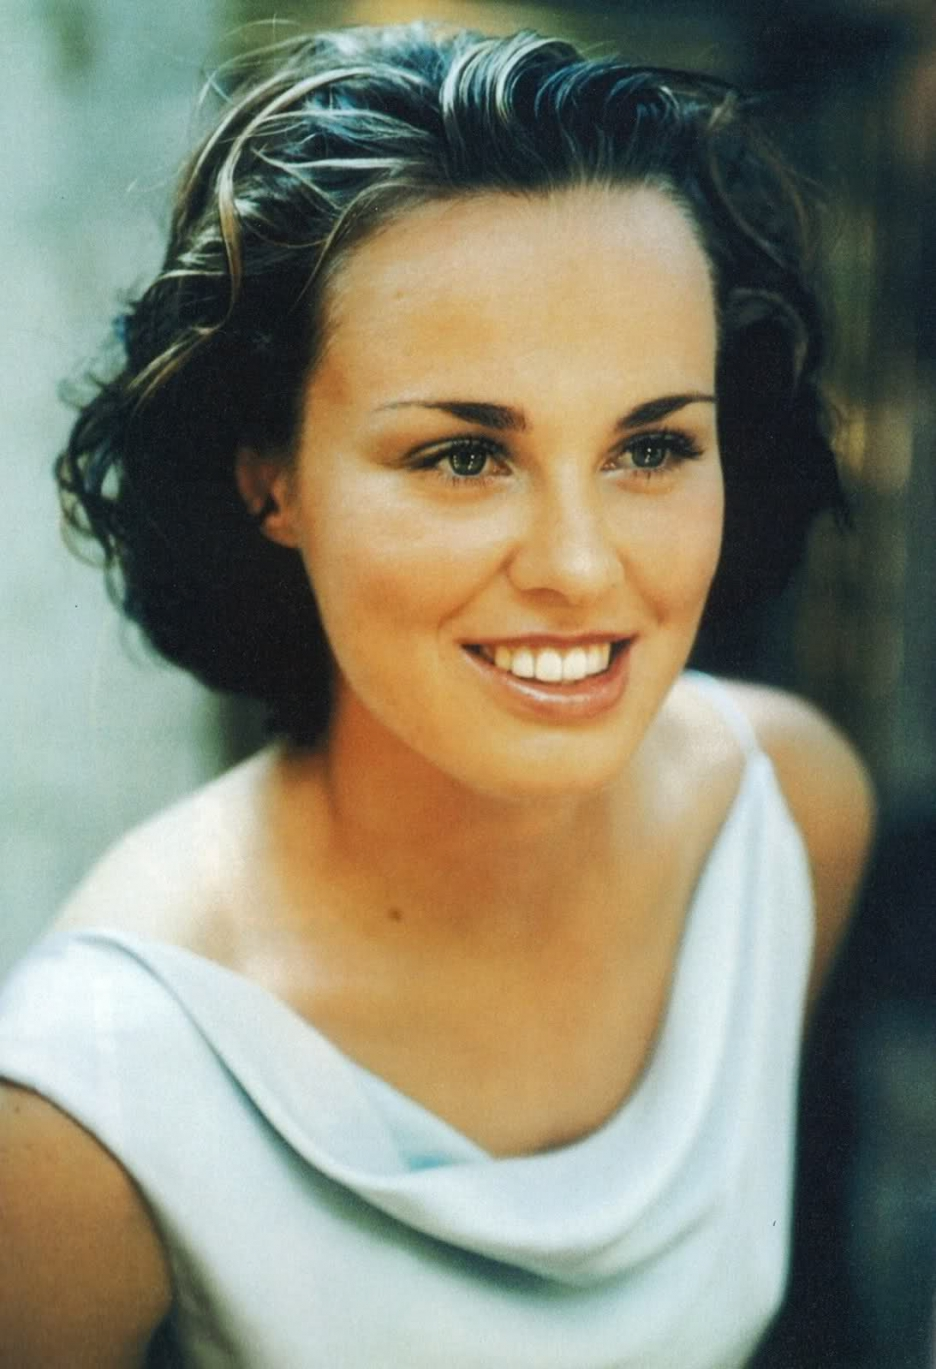 Martina Hingis (born 30